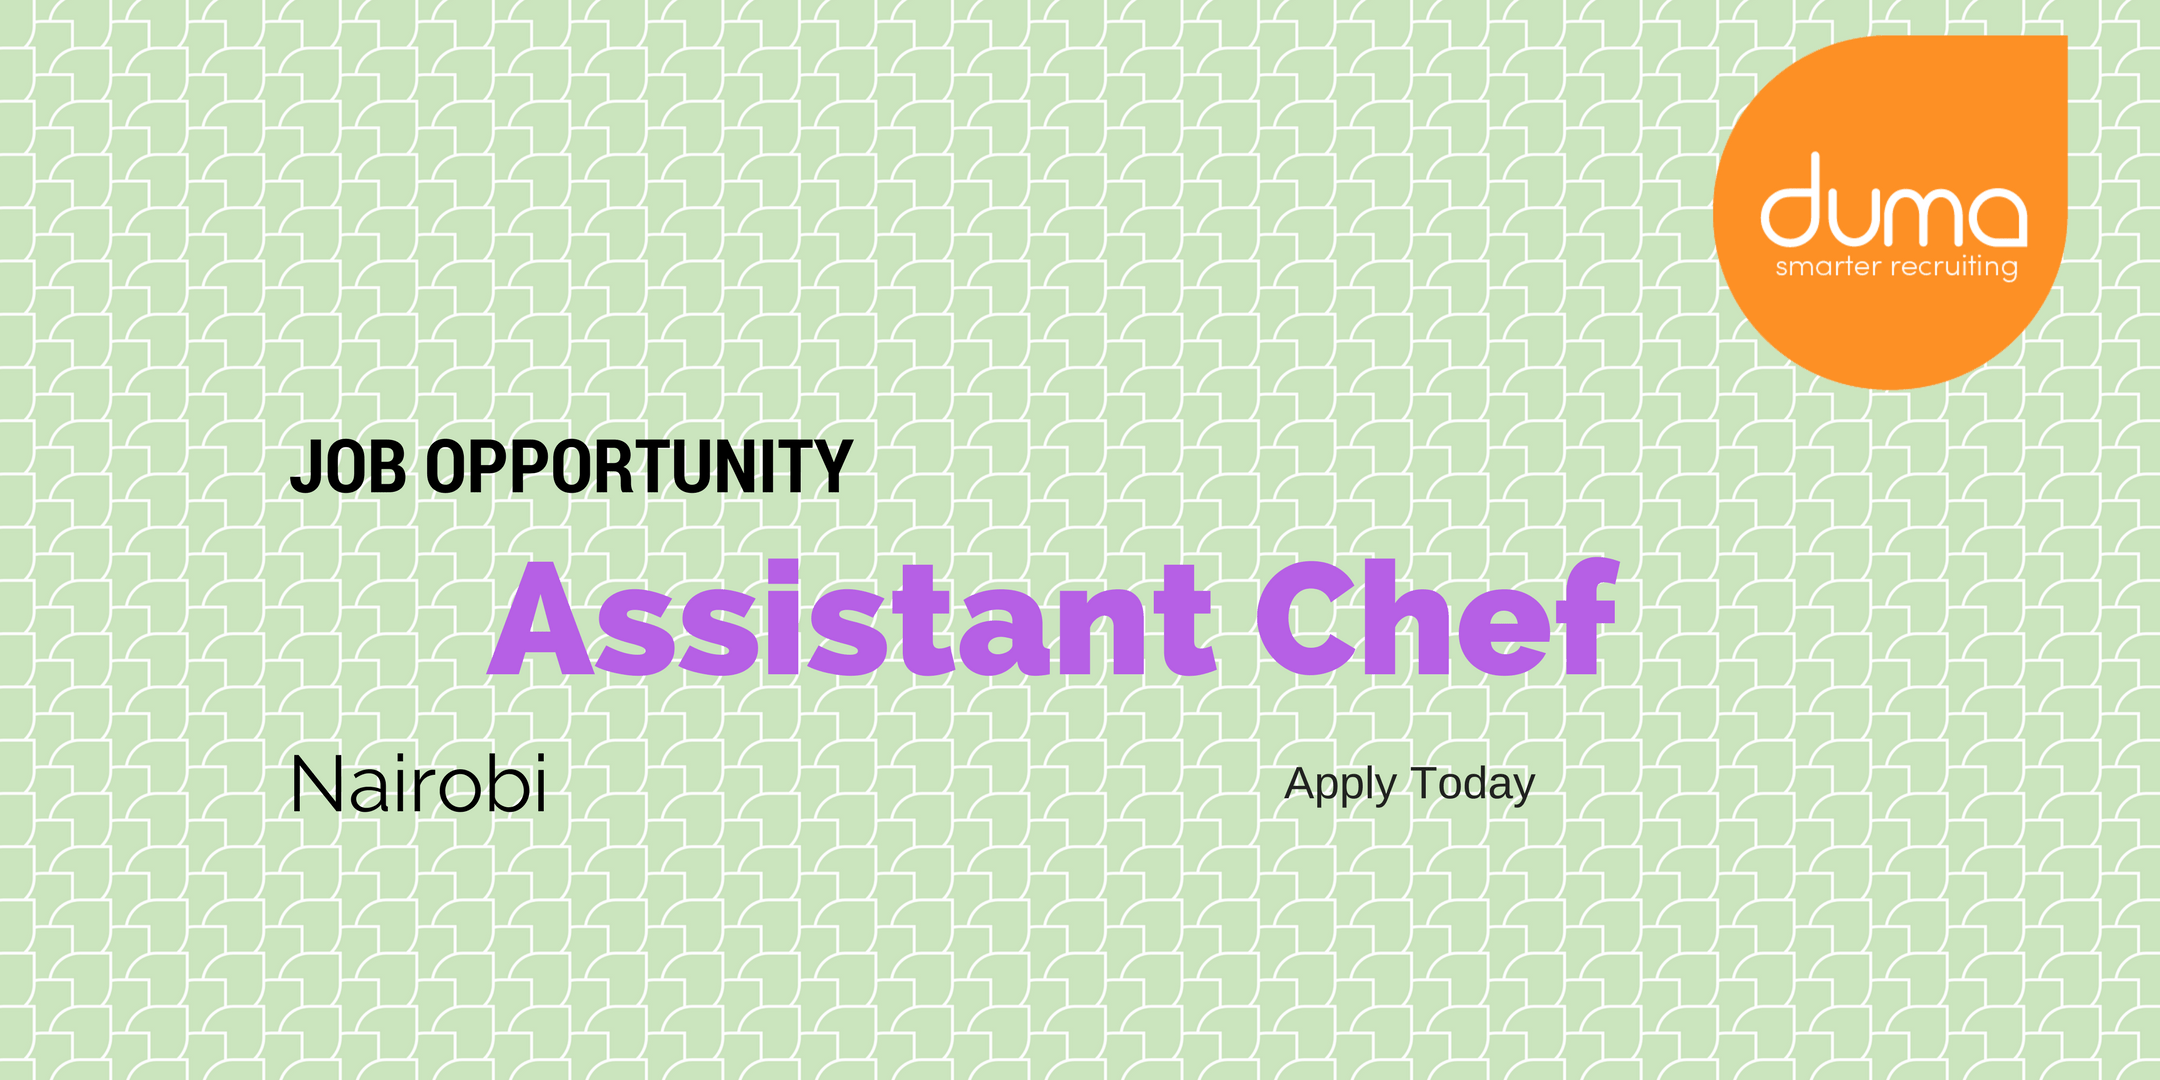 Apply for this Assistant Chef Vacancy